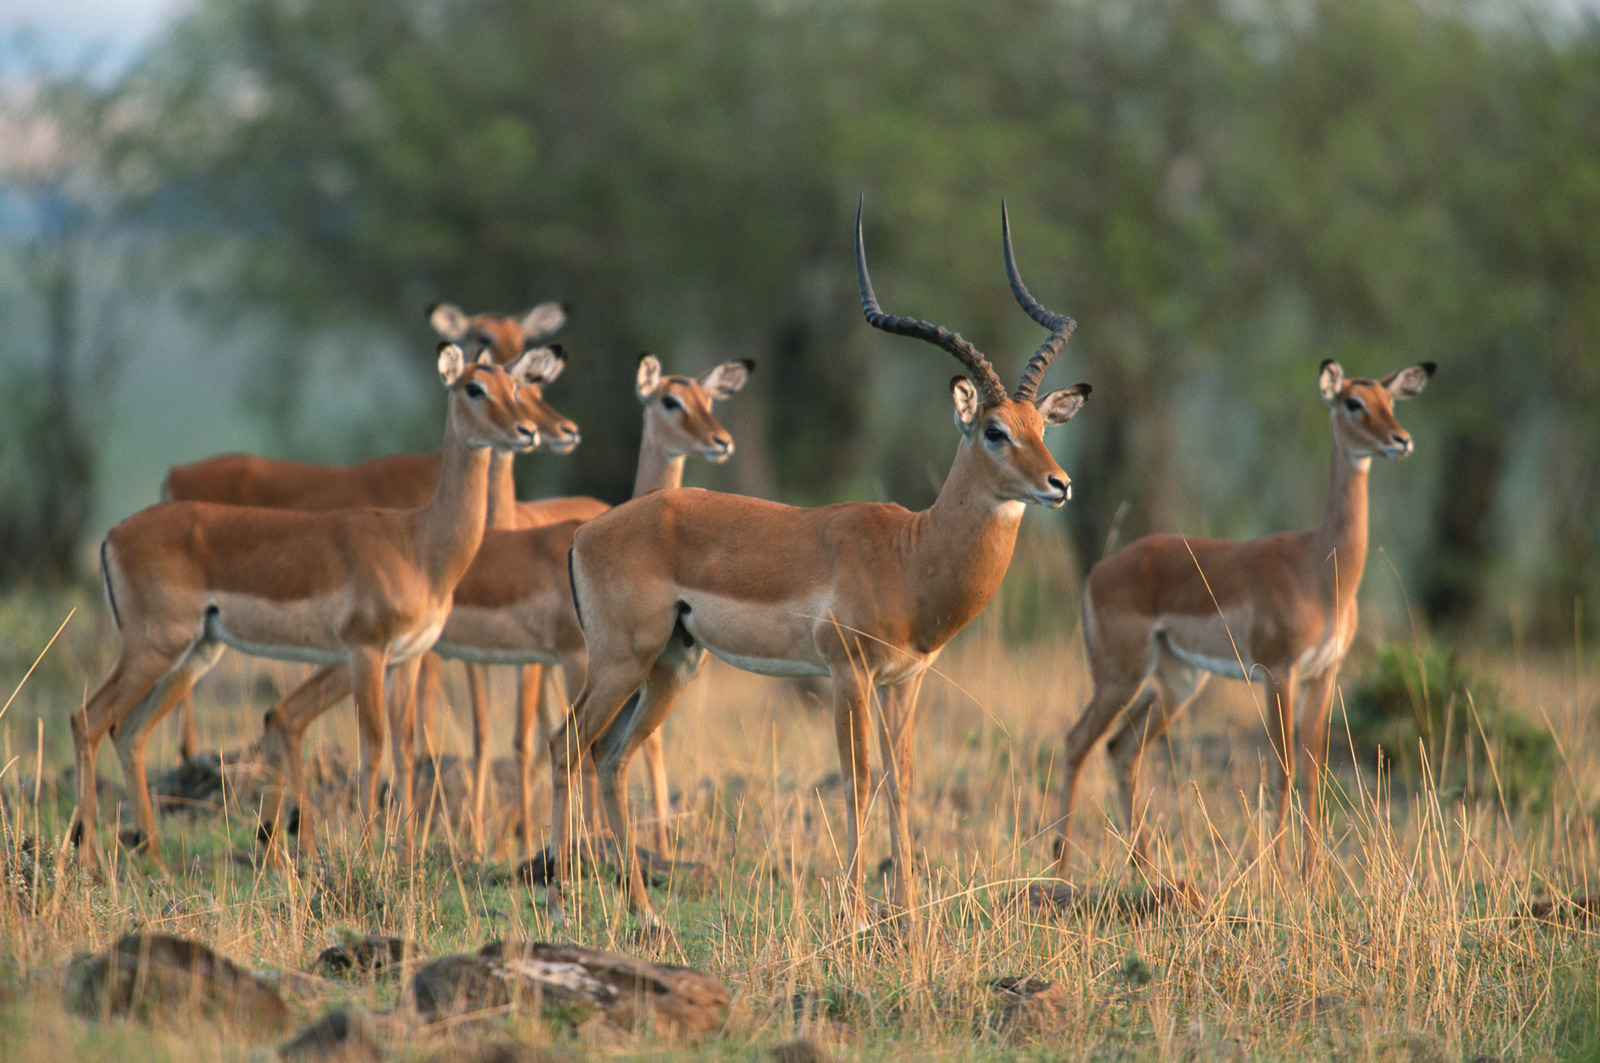 Herd of impalas (Aepyceros melampus) watching